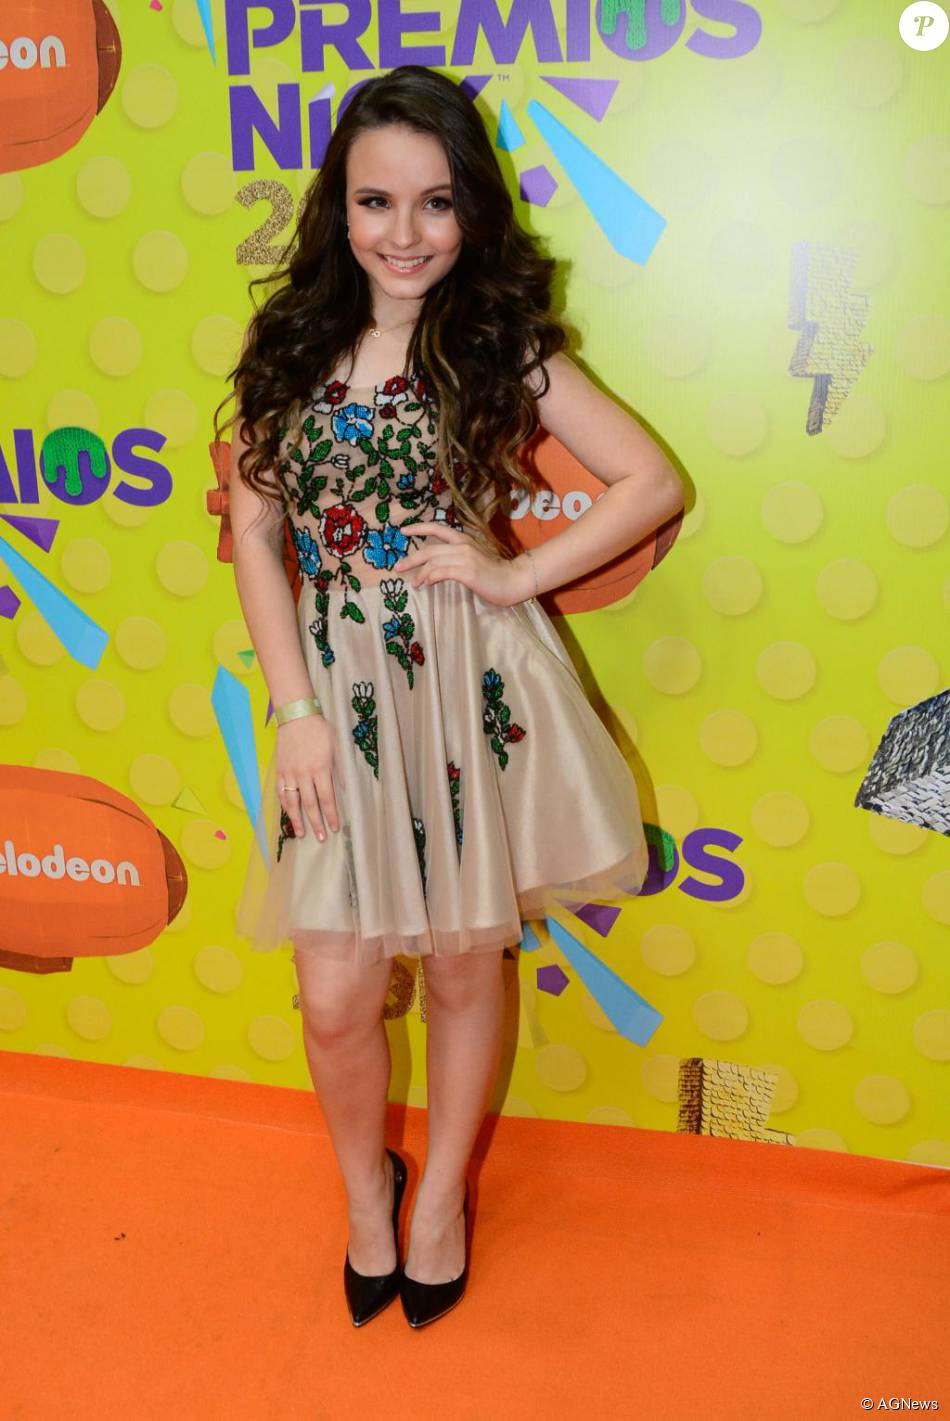 Meus premios nick 2013 completo online dating 7